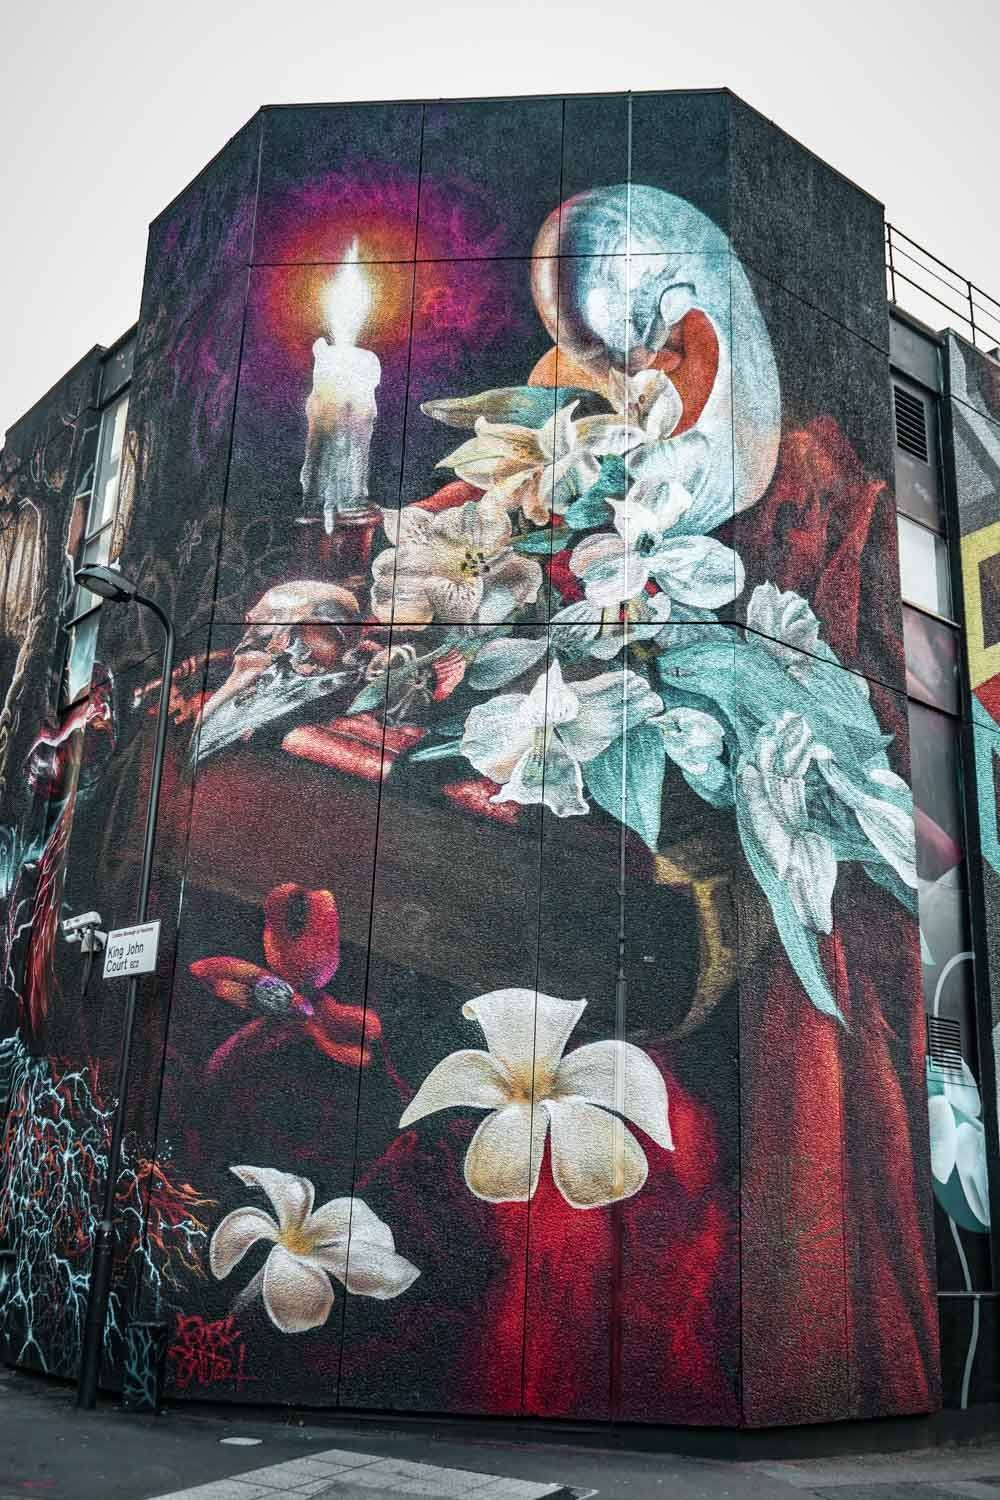 Gorgeous street art in London